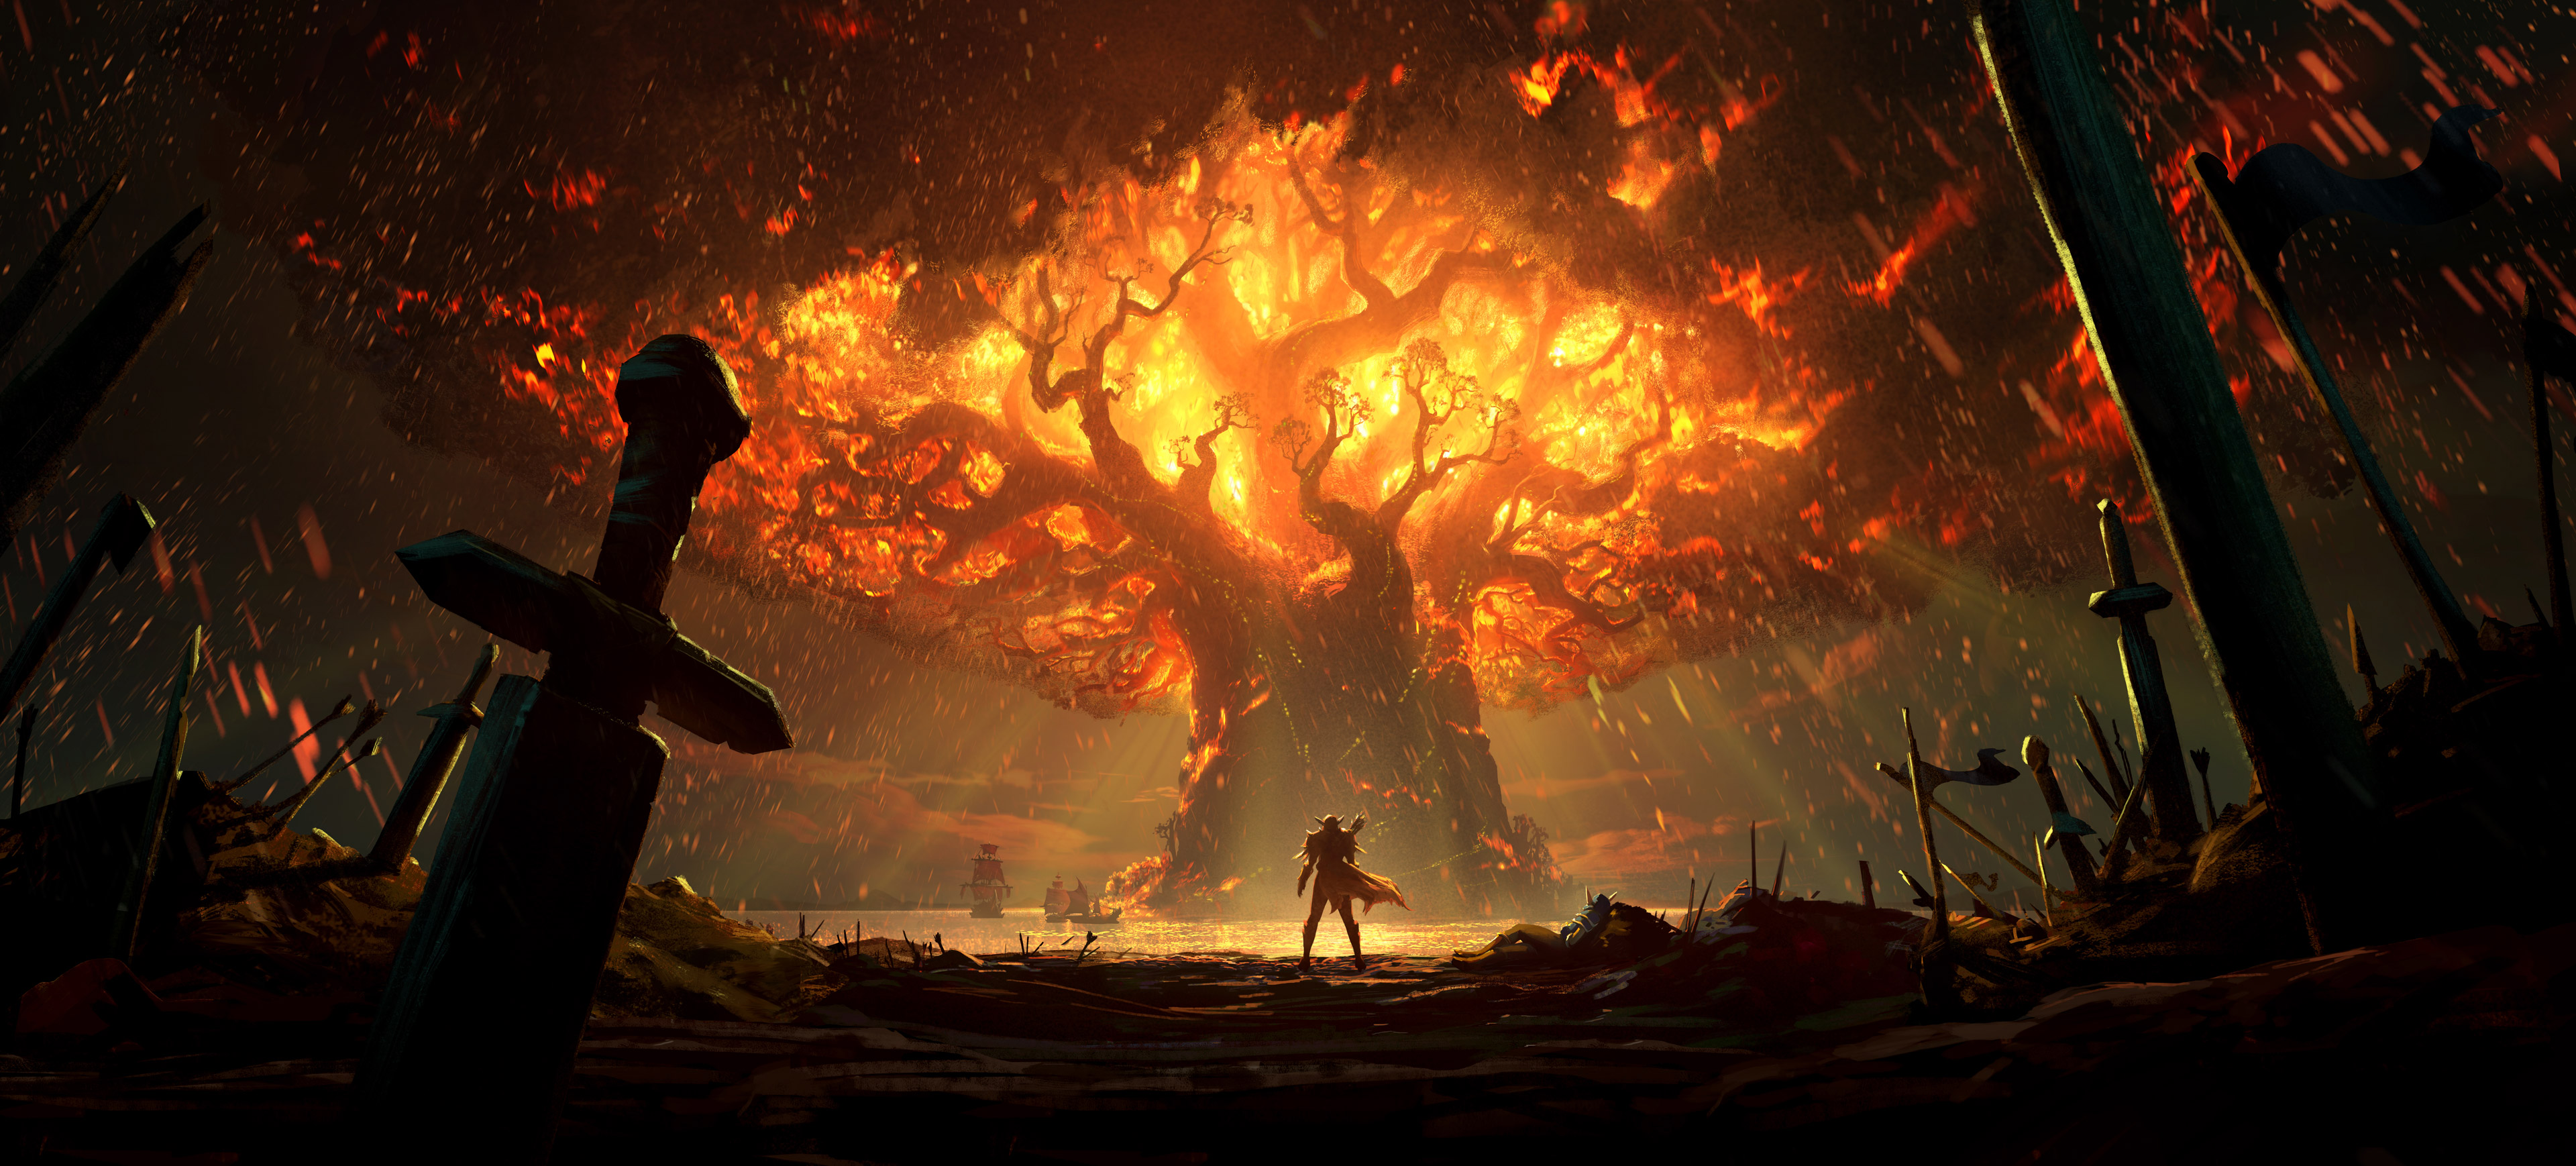 Everything you need to know about World of Warcraft's lore going into Battle for Azeroth